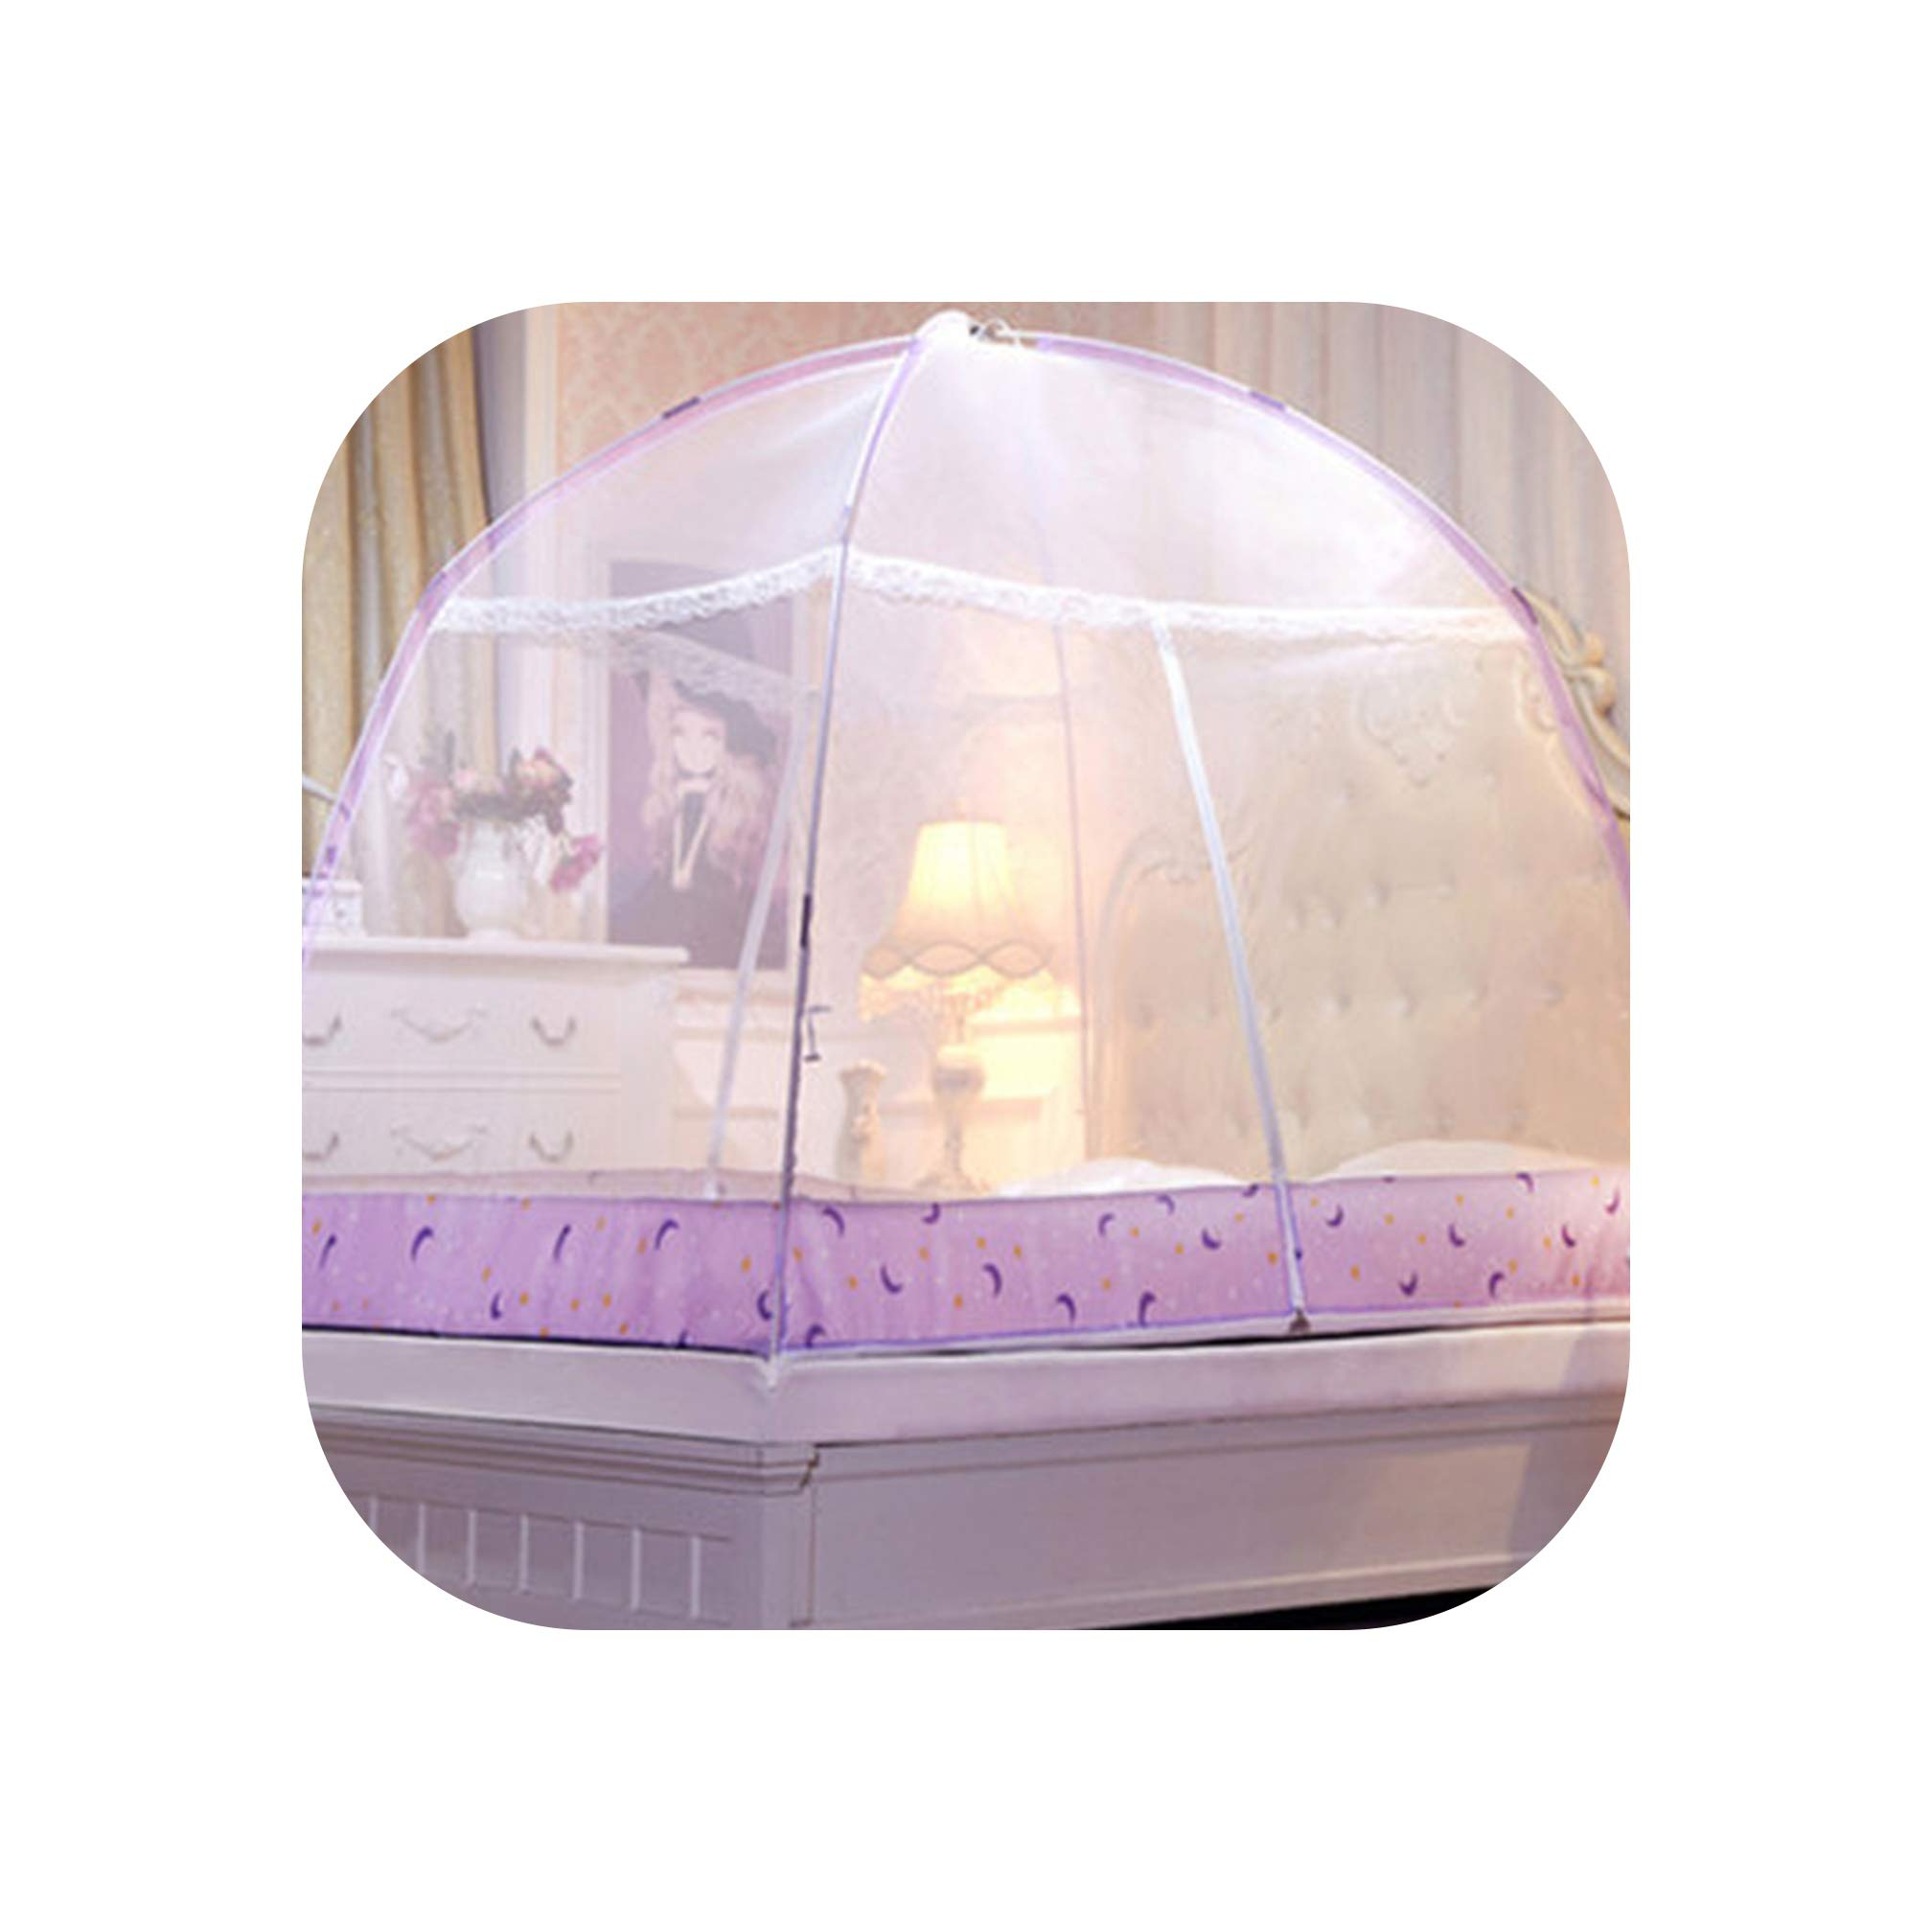 Romantic Purple Dome Mosquito Net Double Door Polyester Fabric Bed Netting Canopy Mosquito Netting Folding Netting Tent Bed,White,1.5m (5 feet) Bed